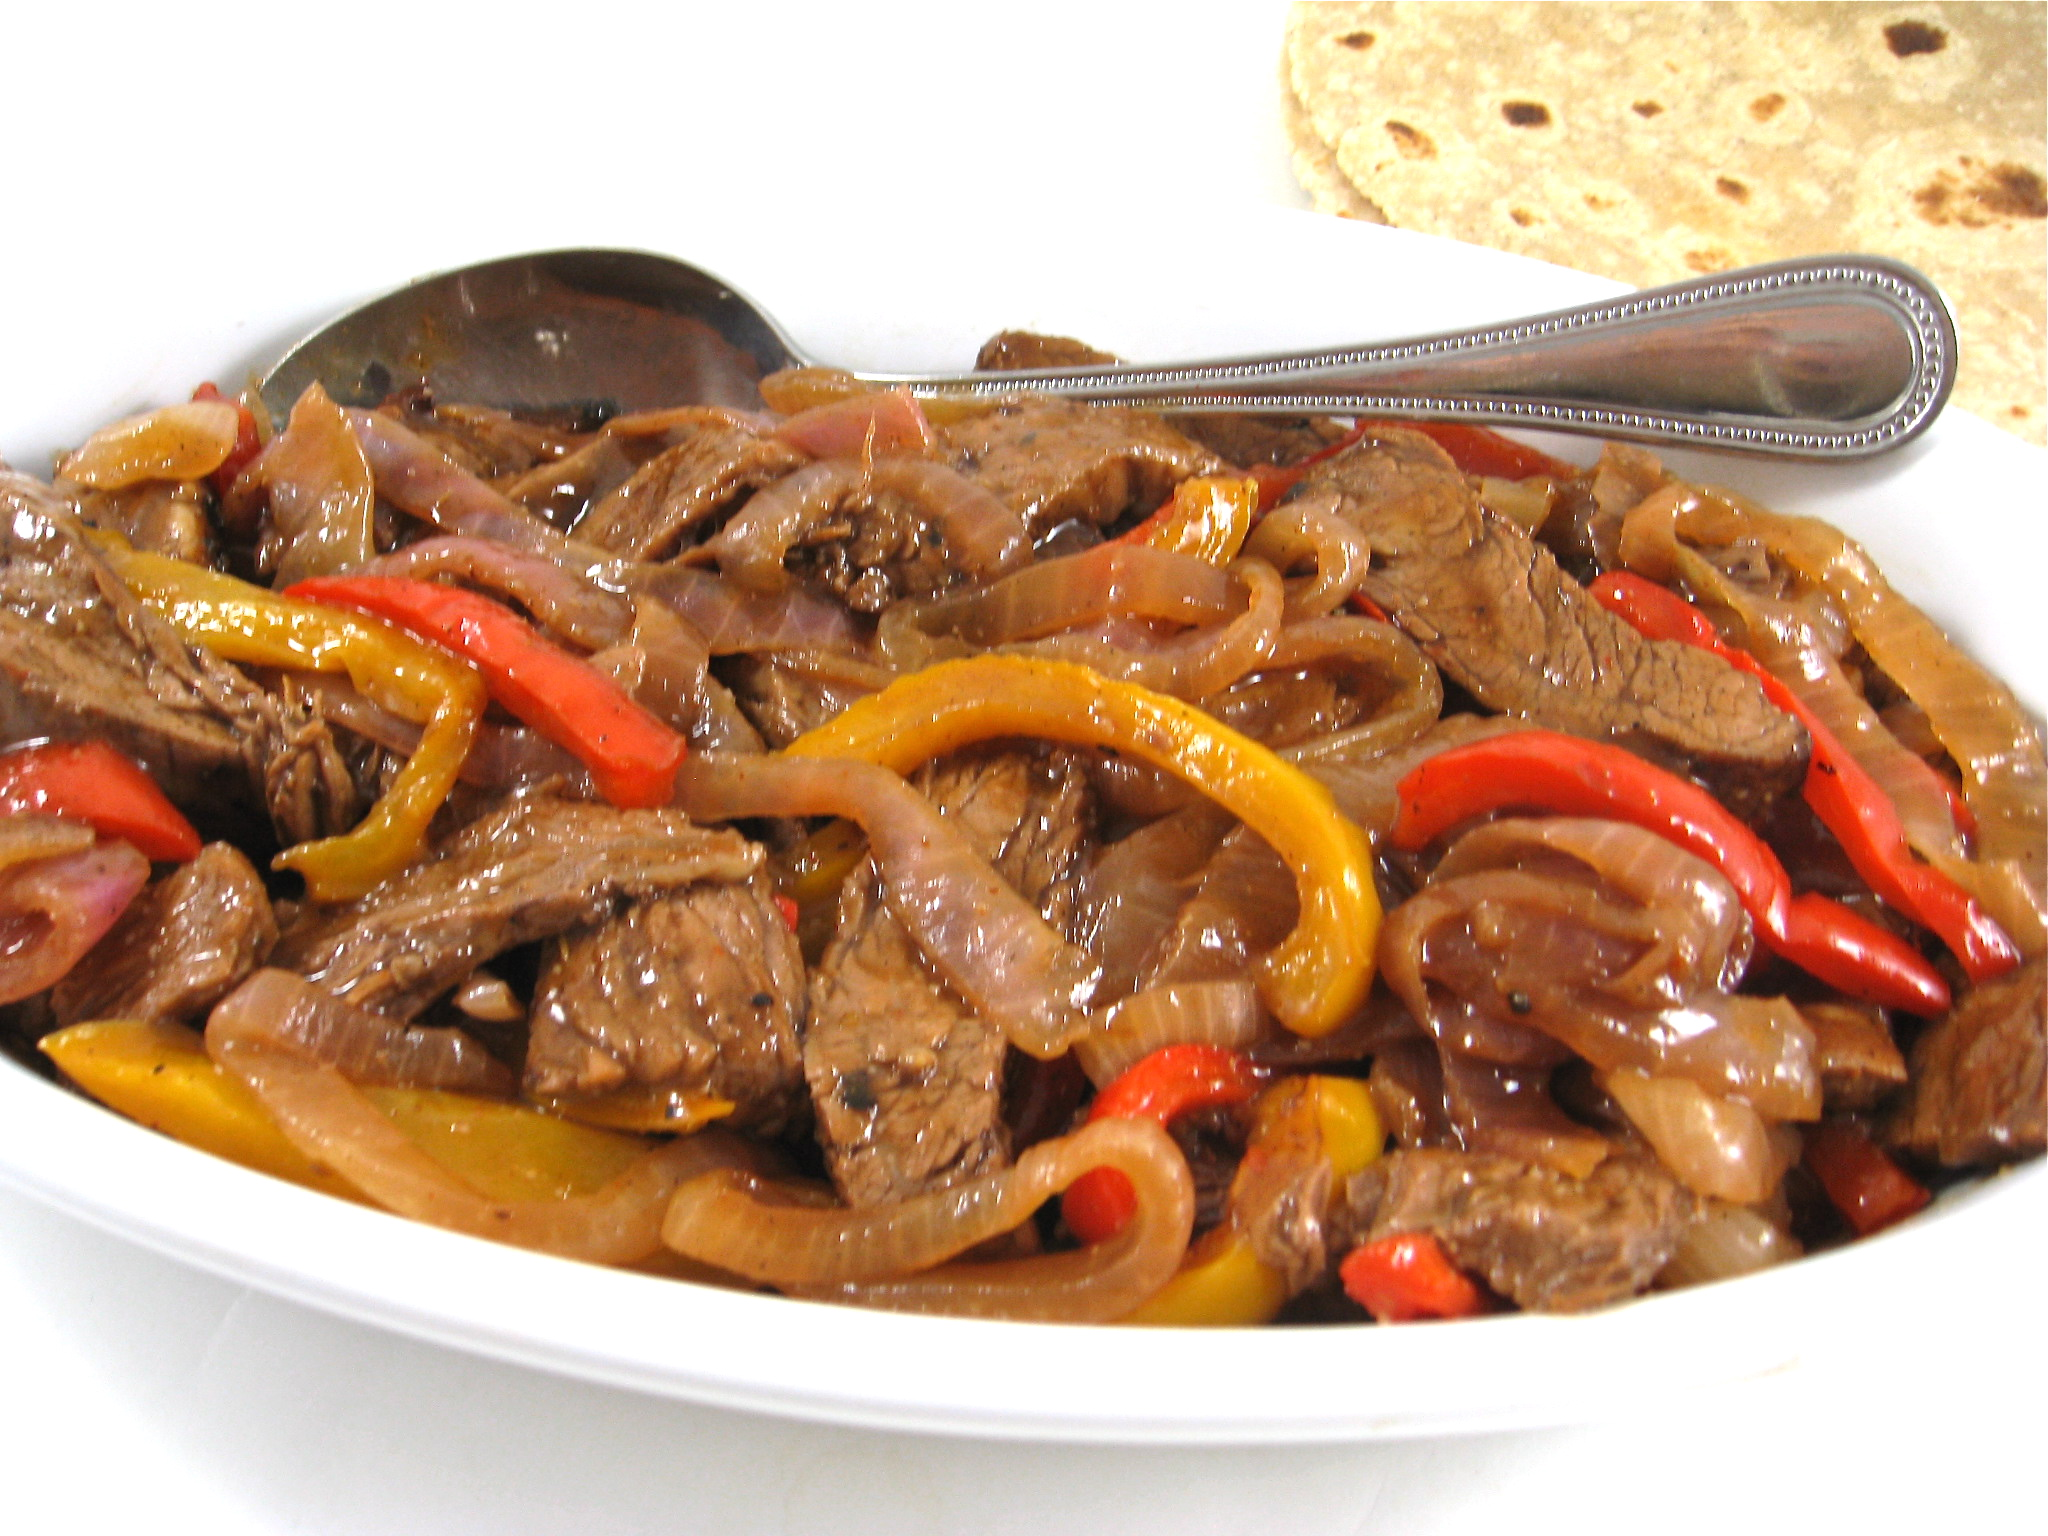 ... steak fajitas grilled steak fajitas steak and gorgonzola fajitas